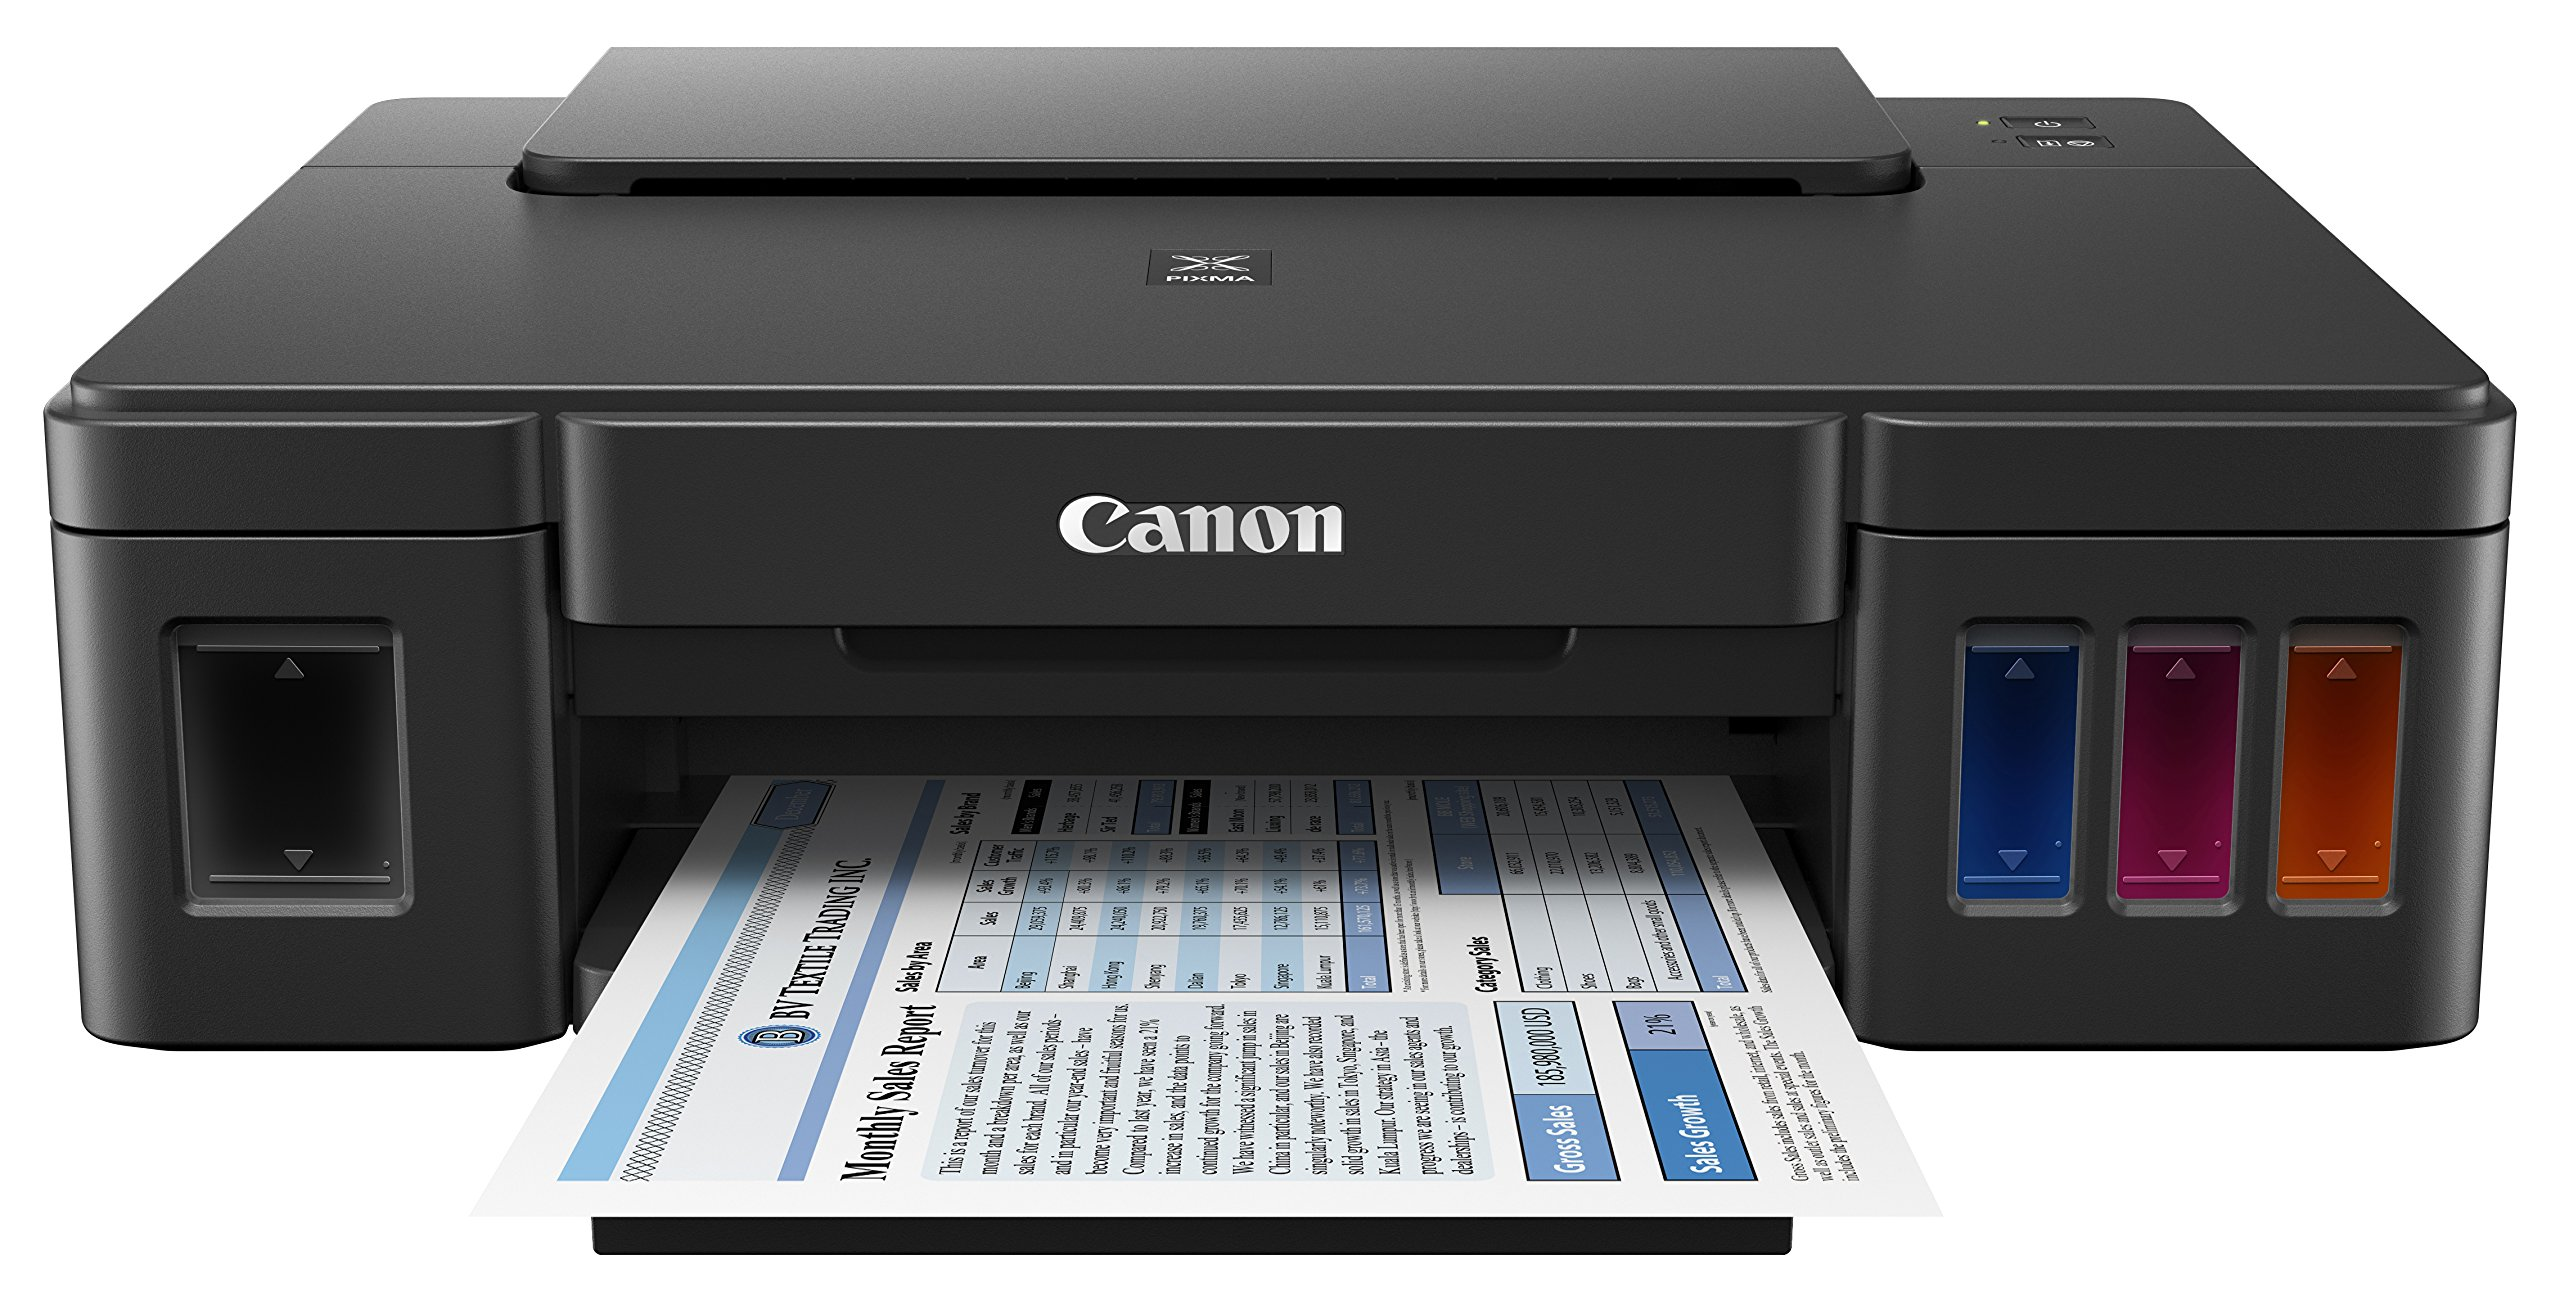 Canon PIXMA G1200 Megatank Single Function Printer, Print Only, Black